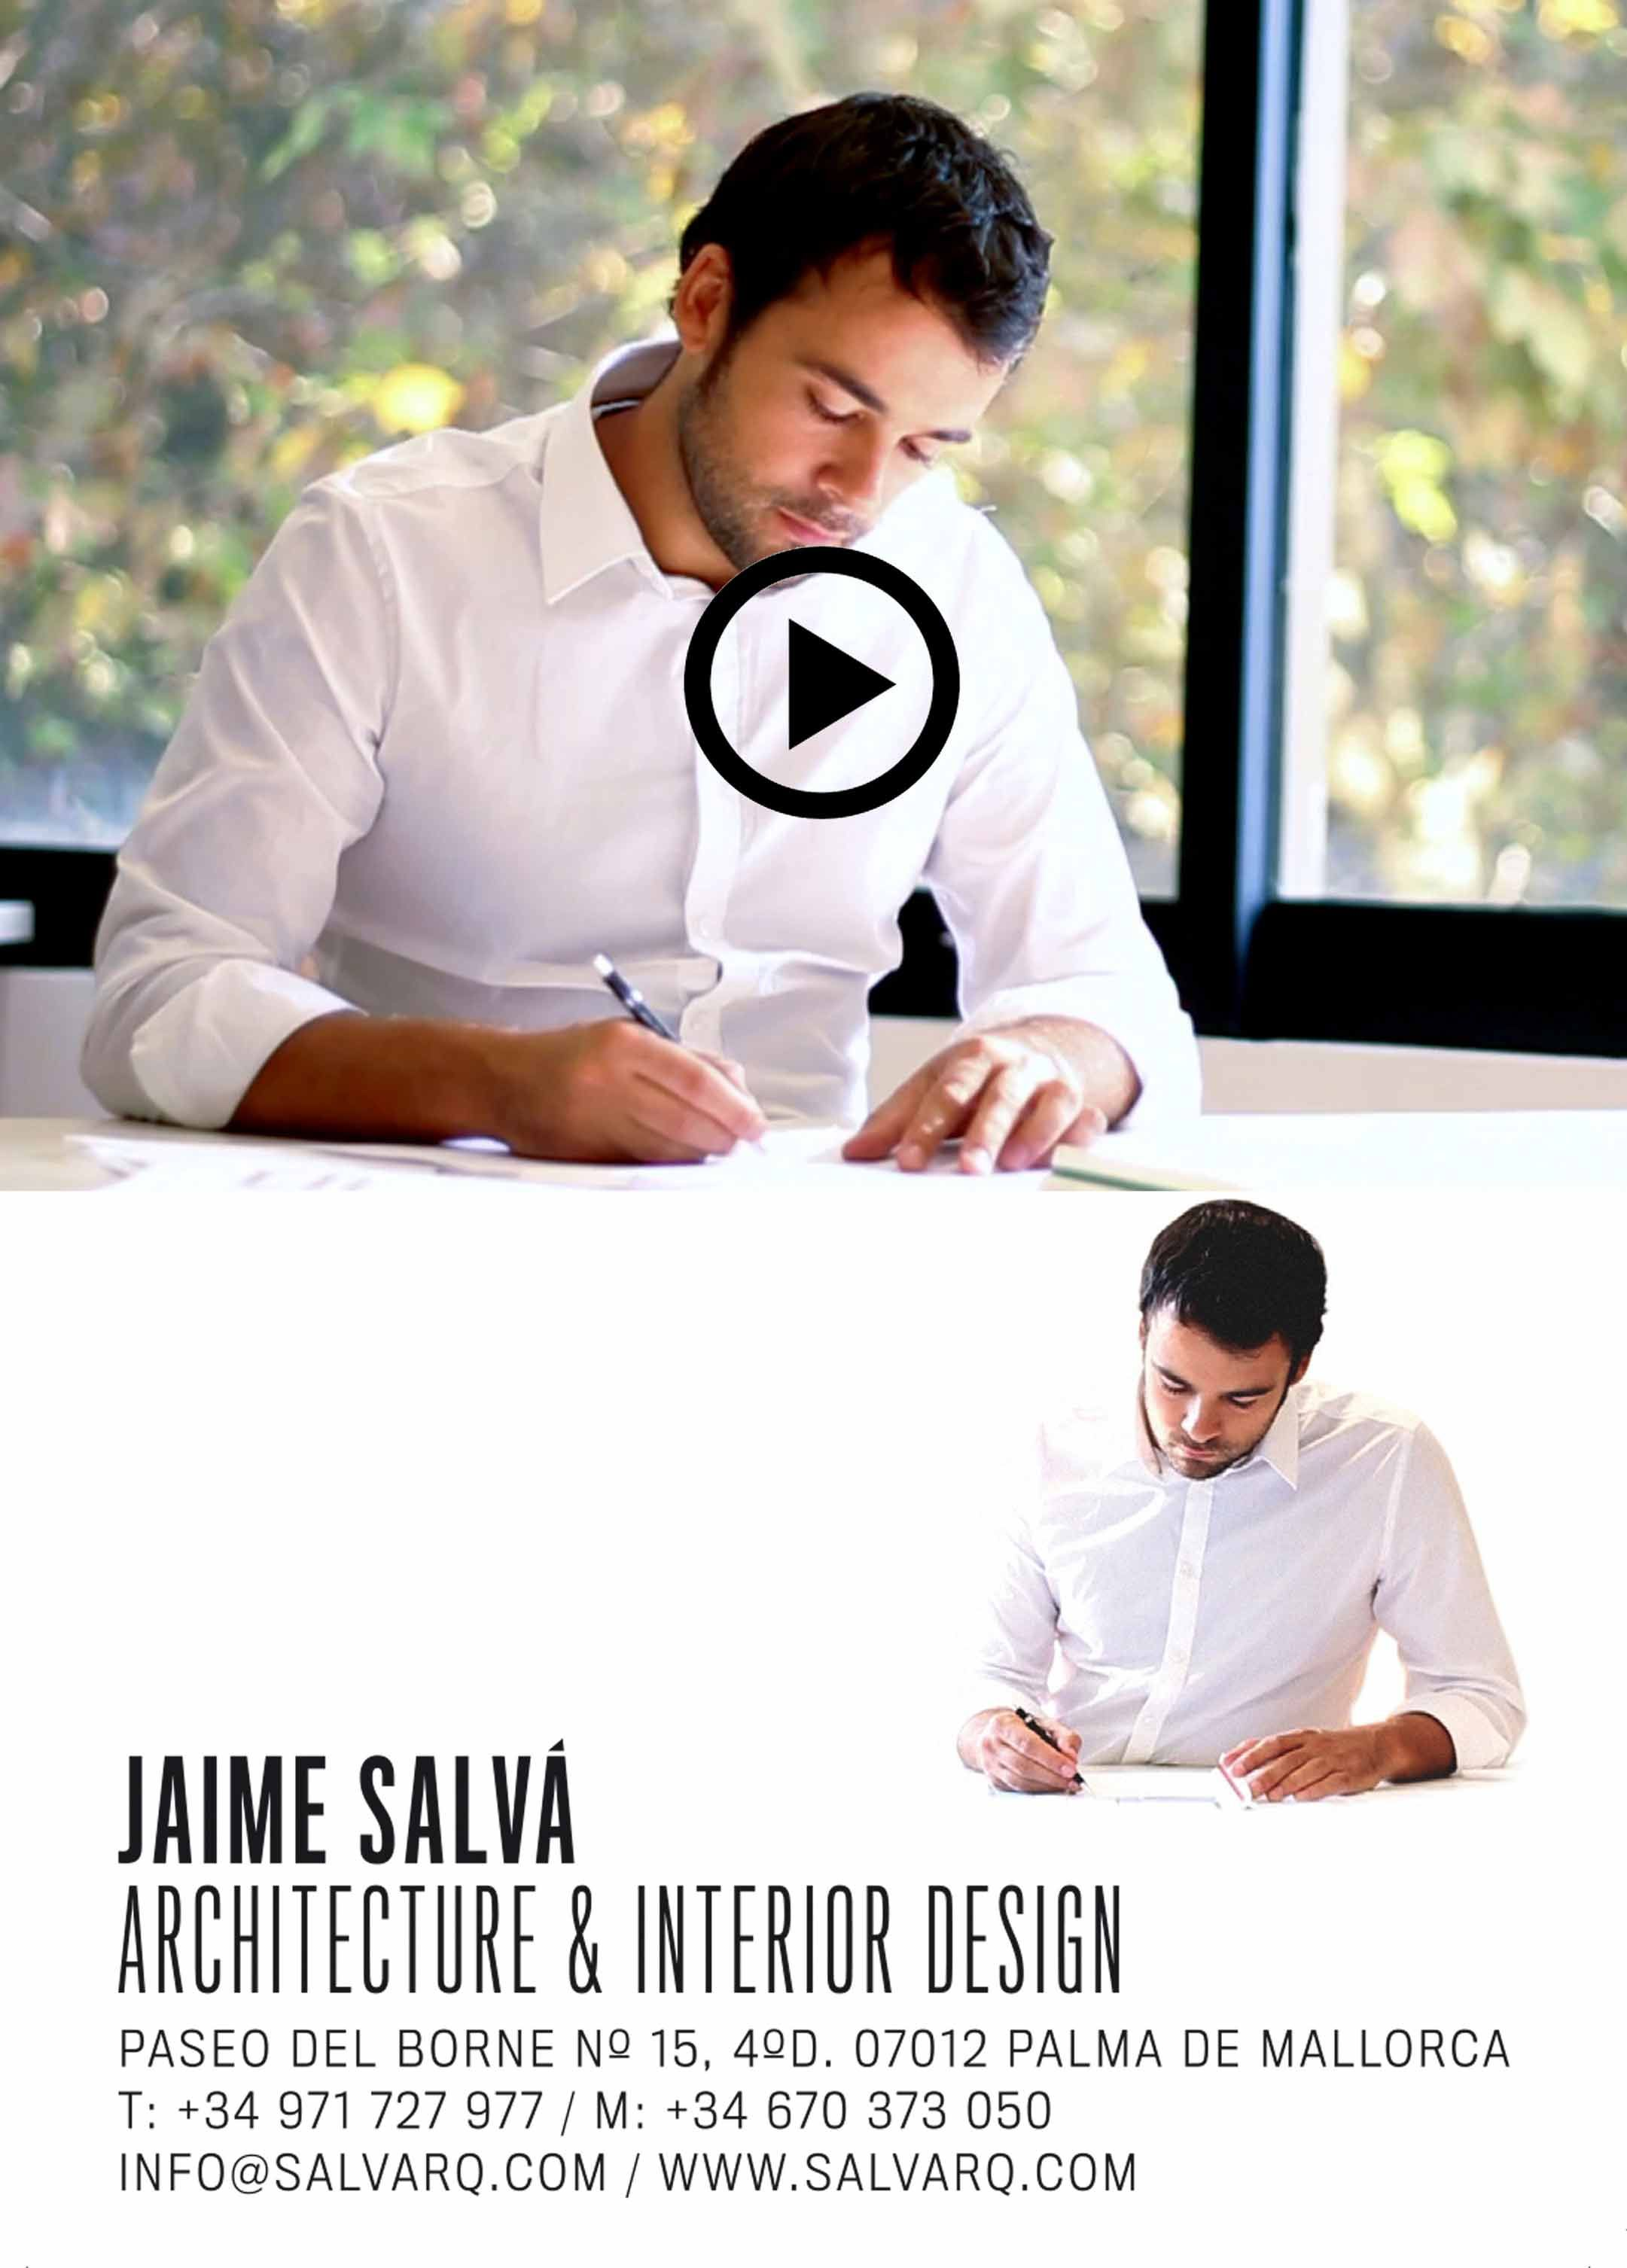 Video corporativo JAIME SALVÁ, Arquitectura & Interiorismo